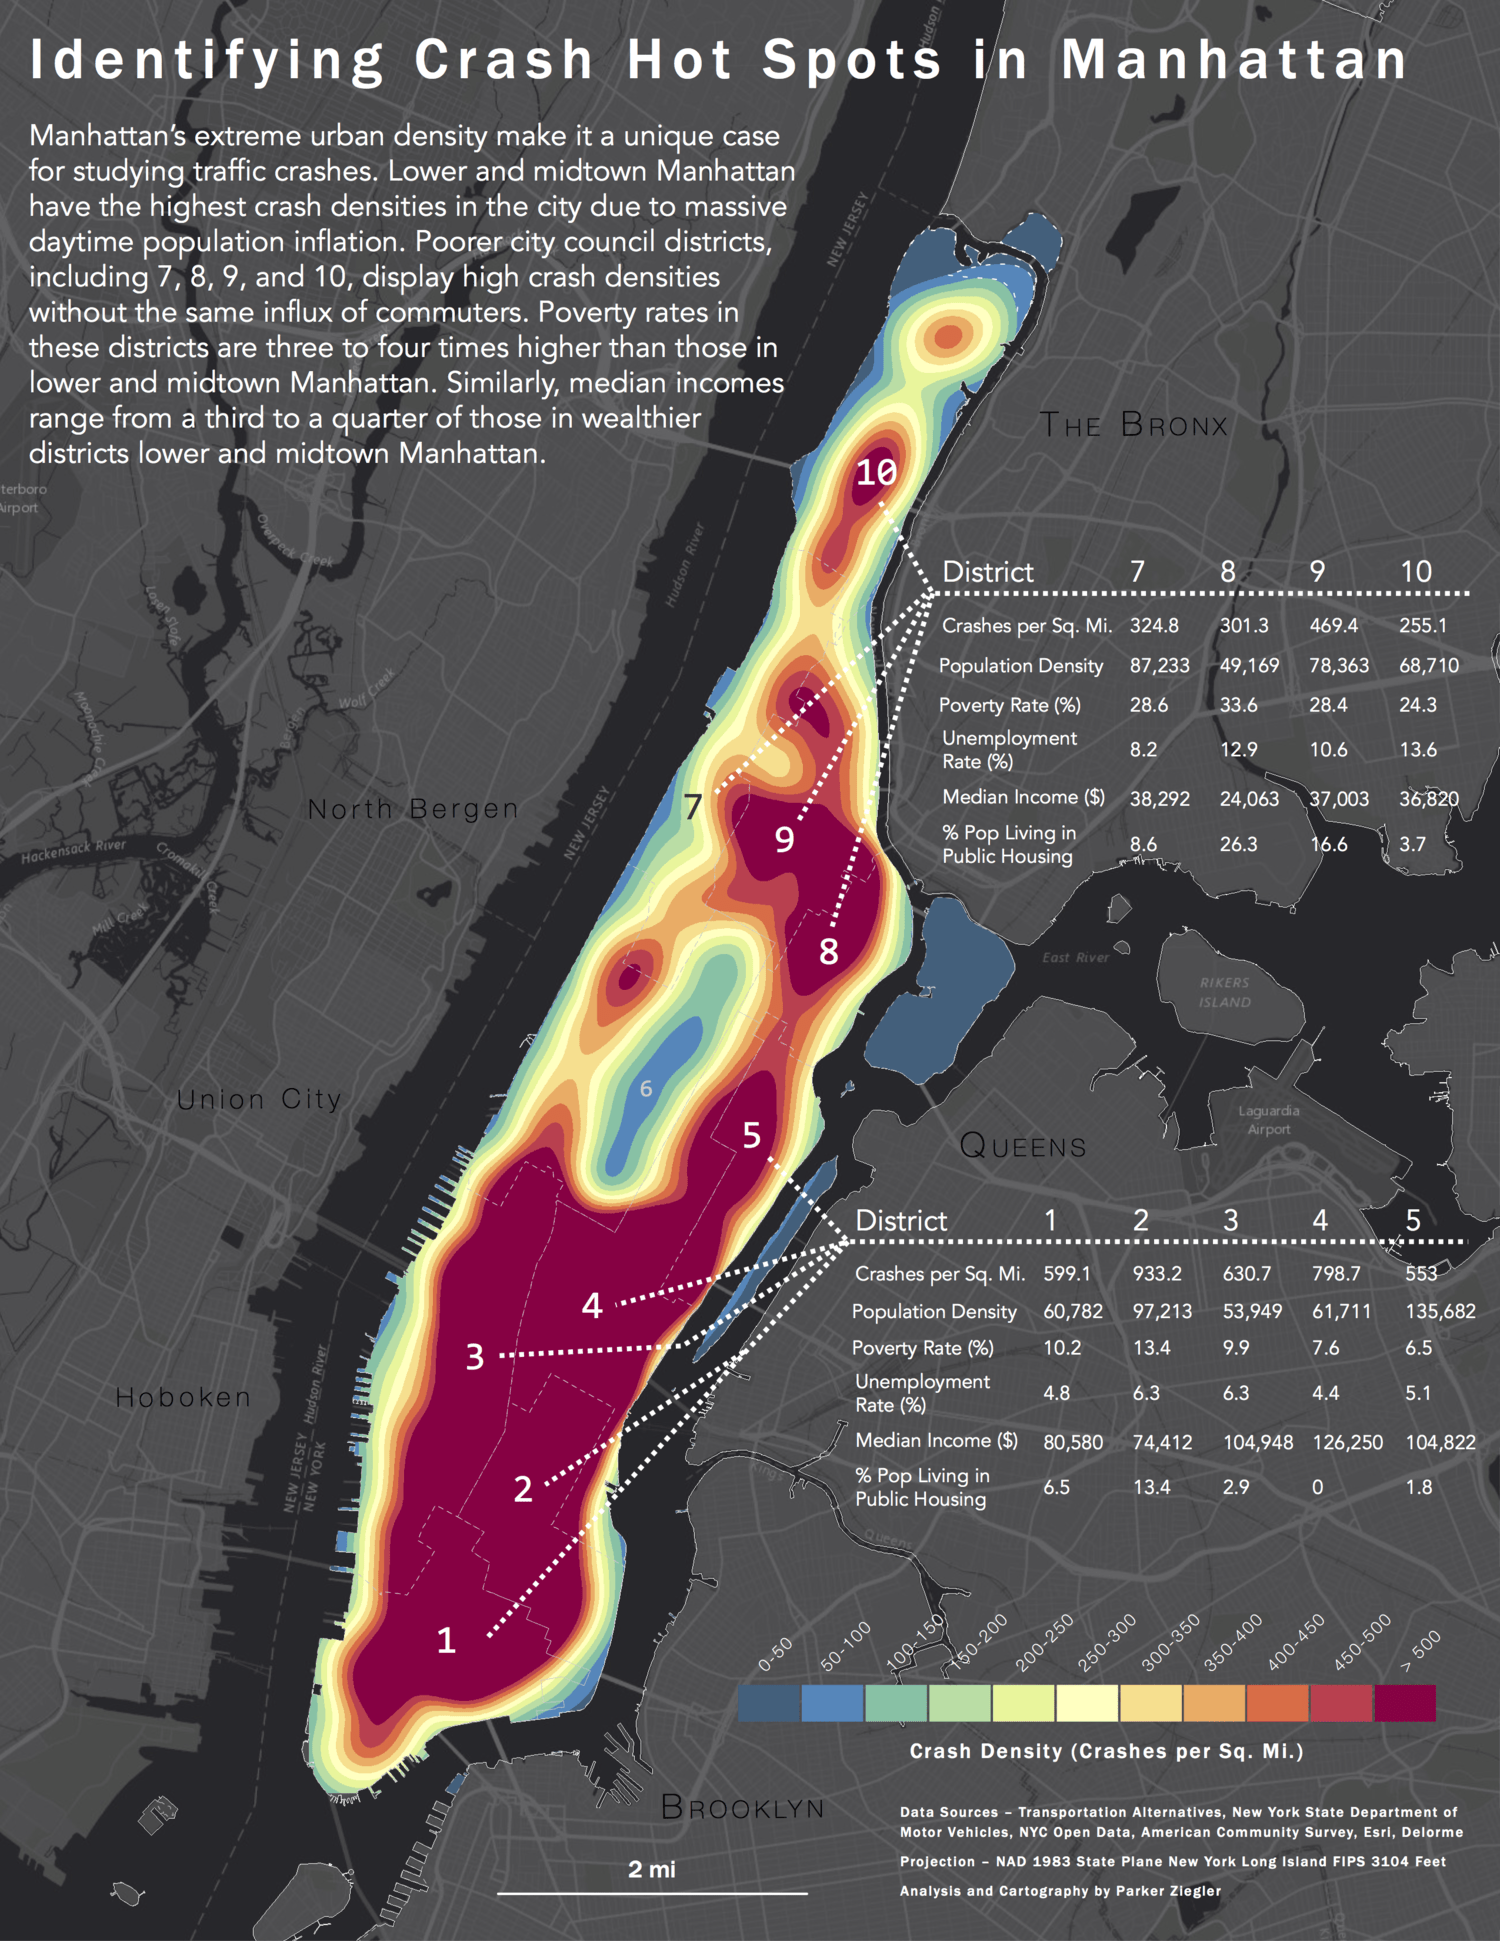 A heat map of traffic crashes in Manhattan, New York City between 2013 and 2015.